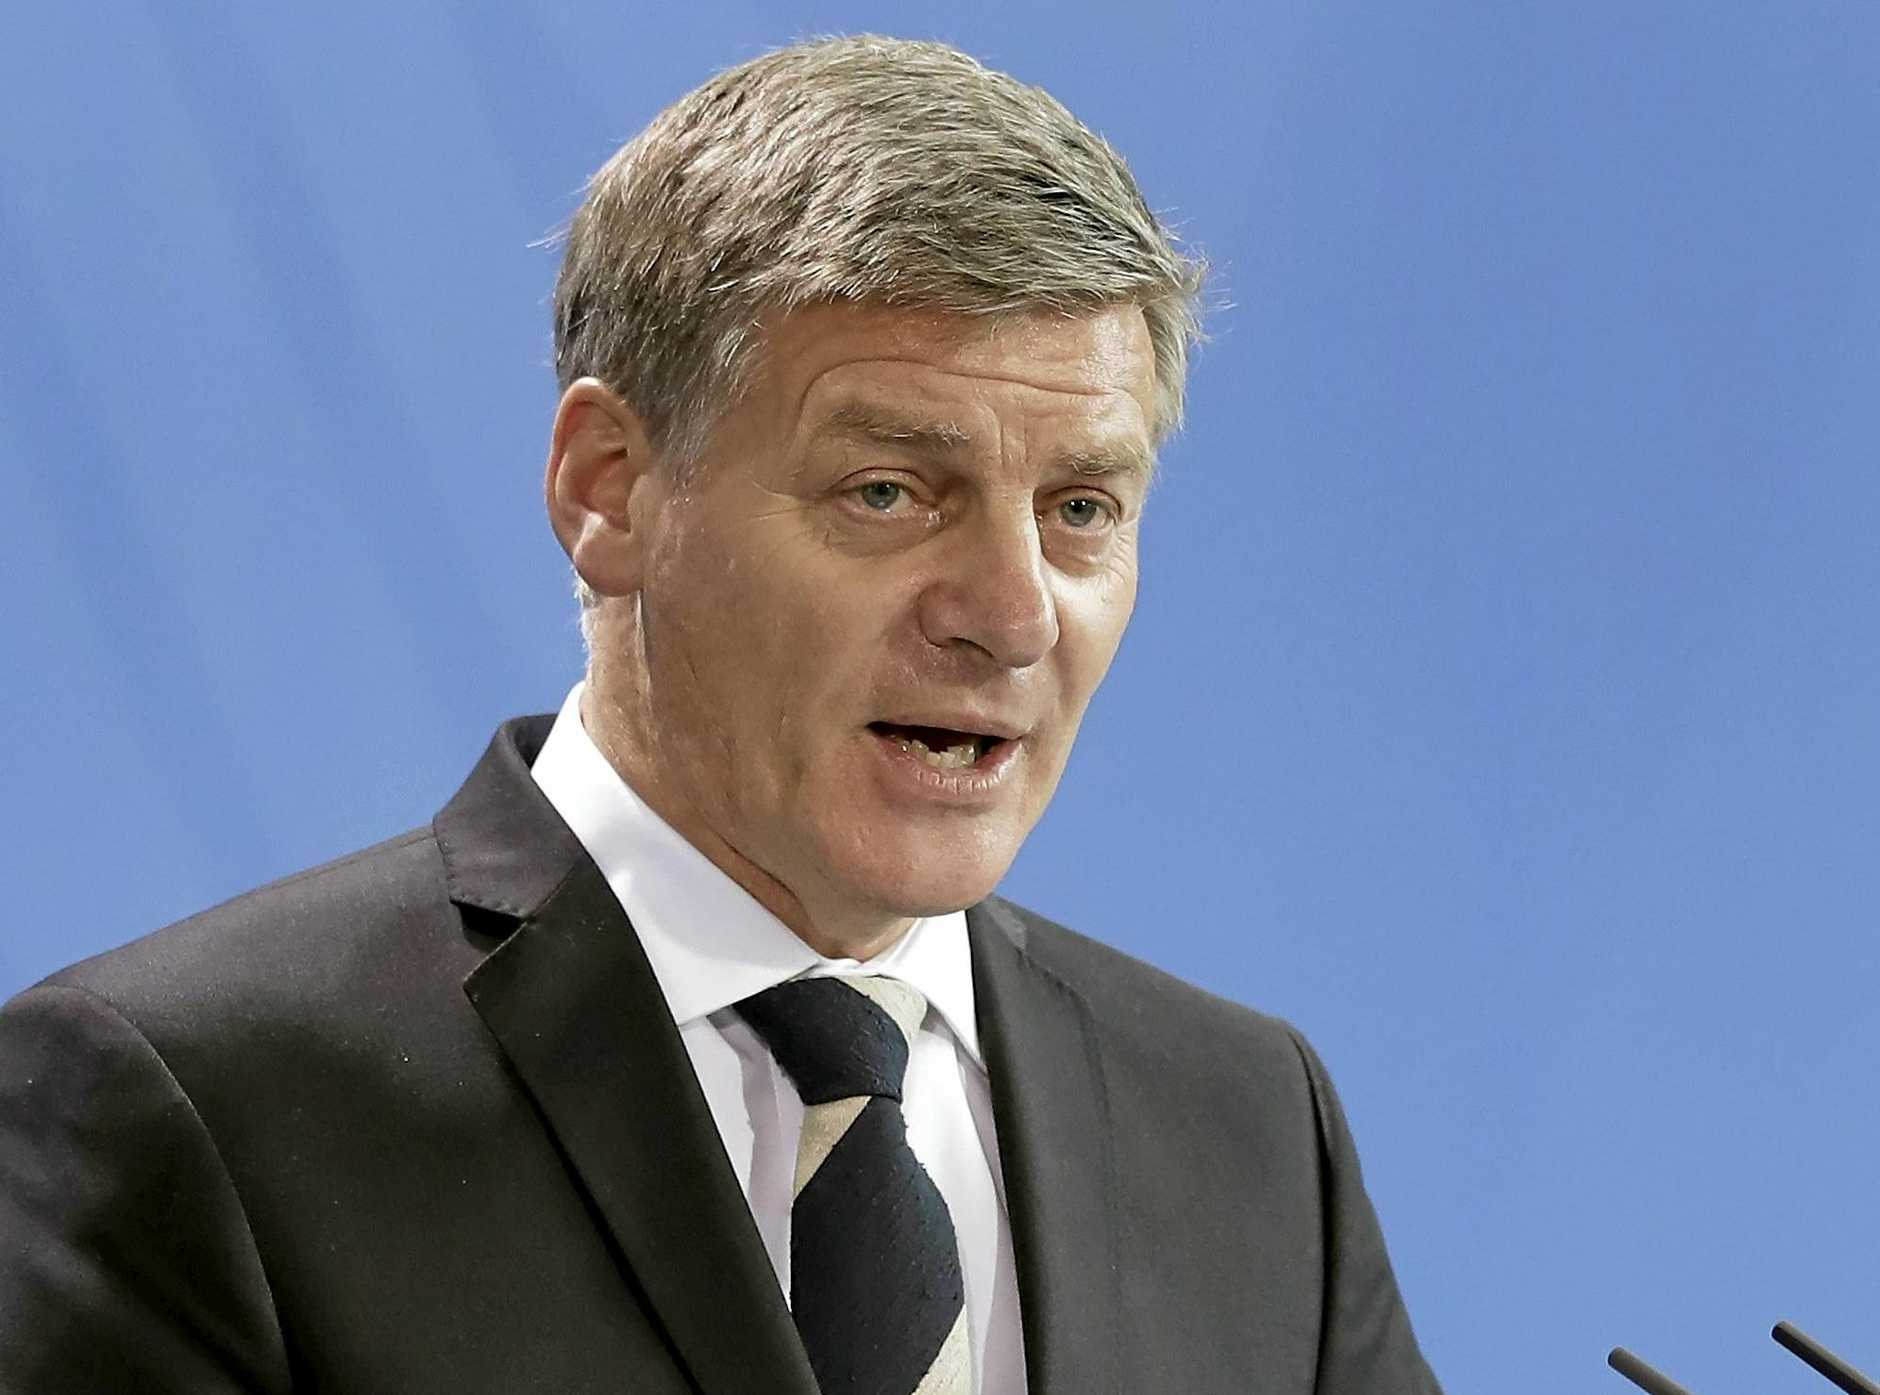 New Zealand's Prime Minister Bill English.